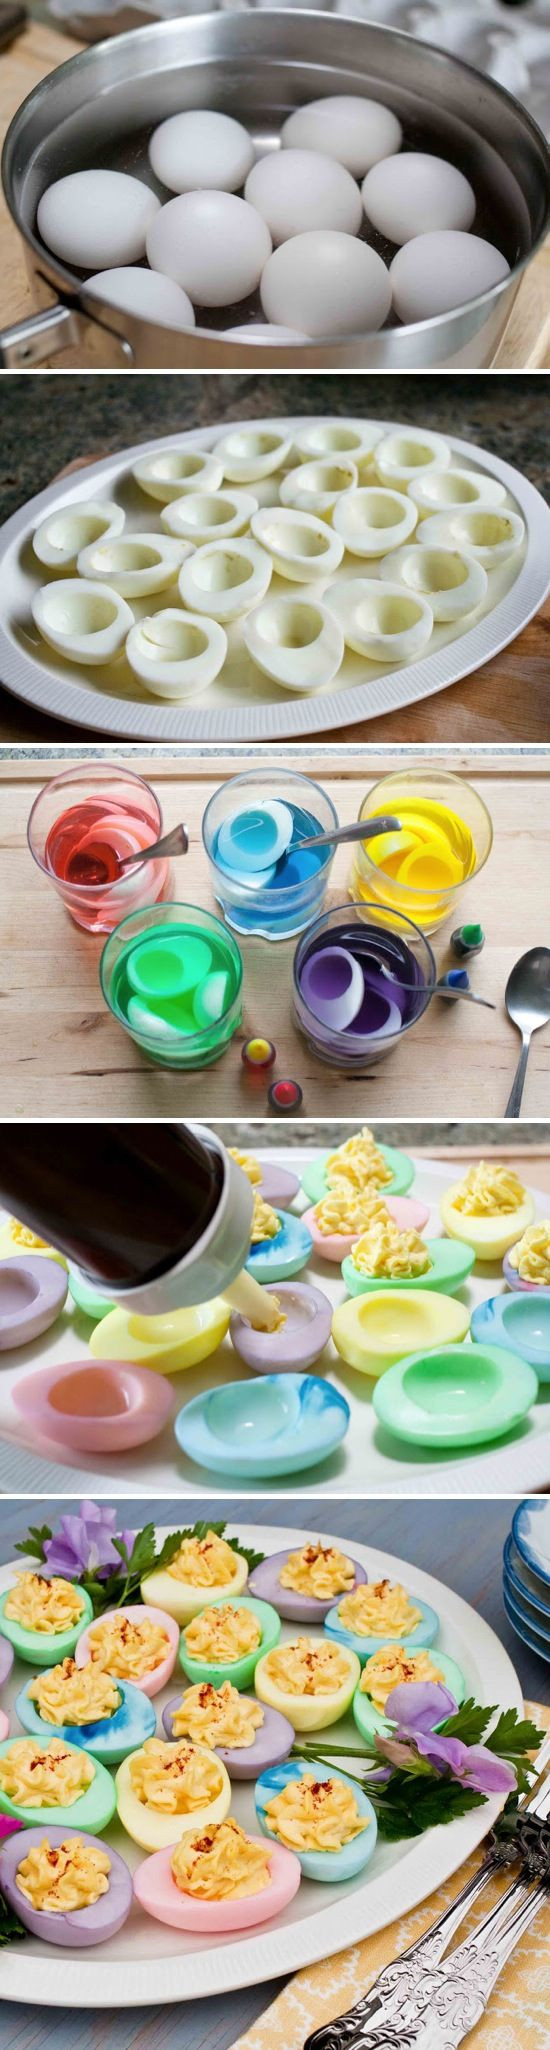 Colored Easter Deviled Eggs  Colorful Deviled Eggs